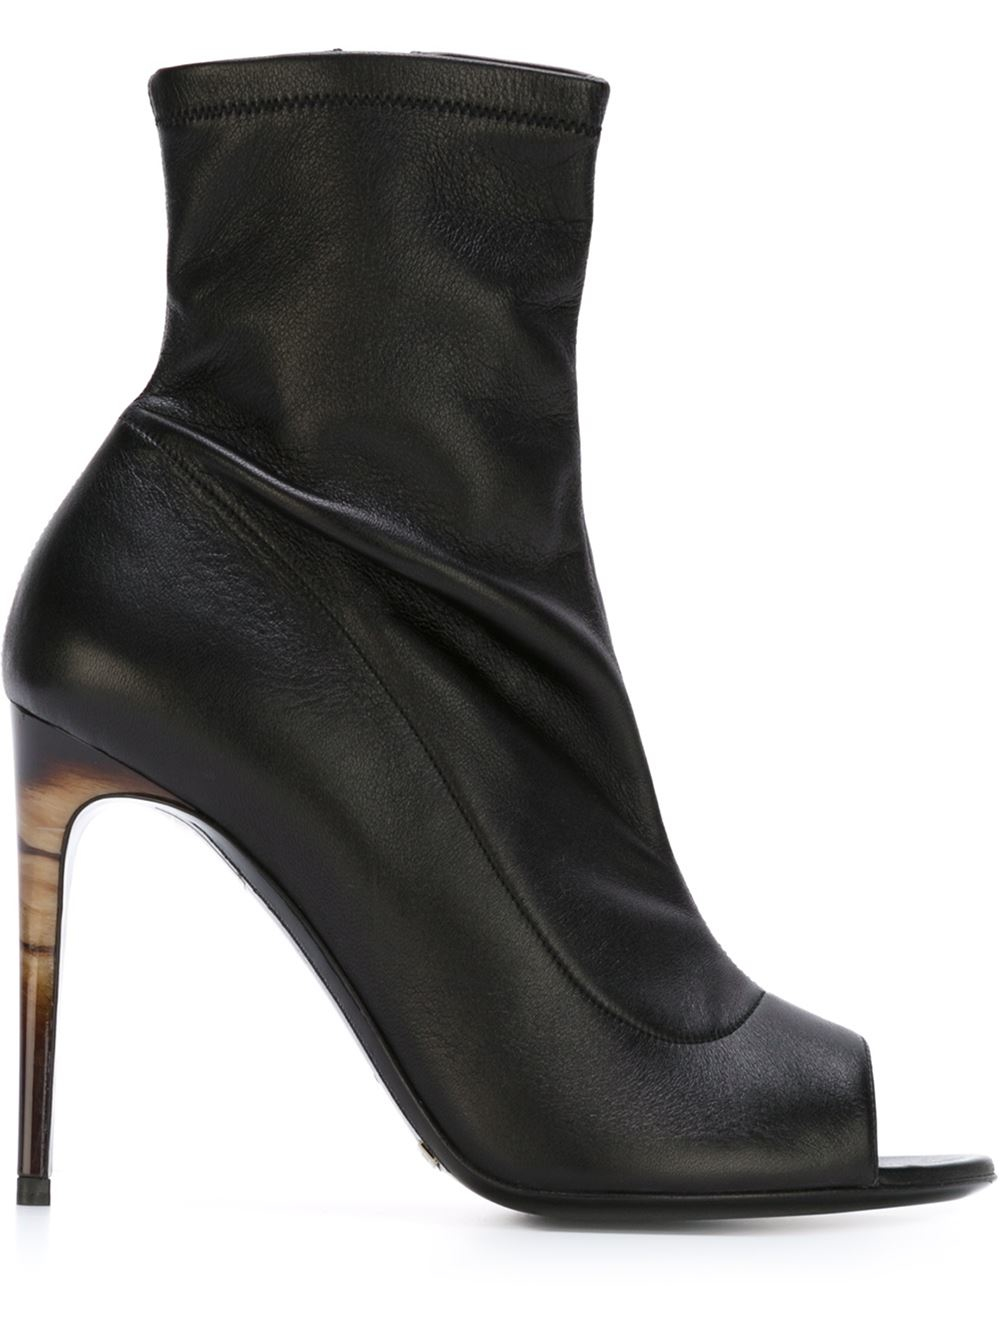 Shop for peep toe boots at gusajigadexe.cf Visit gusajigadexe.cf to find clothing, accessories, shoes, cosmetics & more. The Style of Your Life.